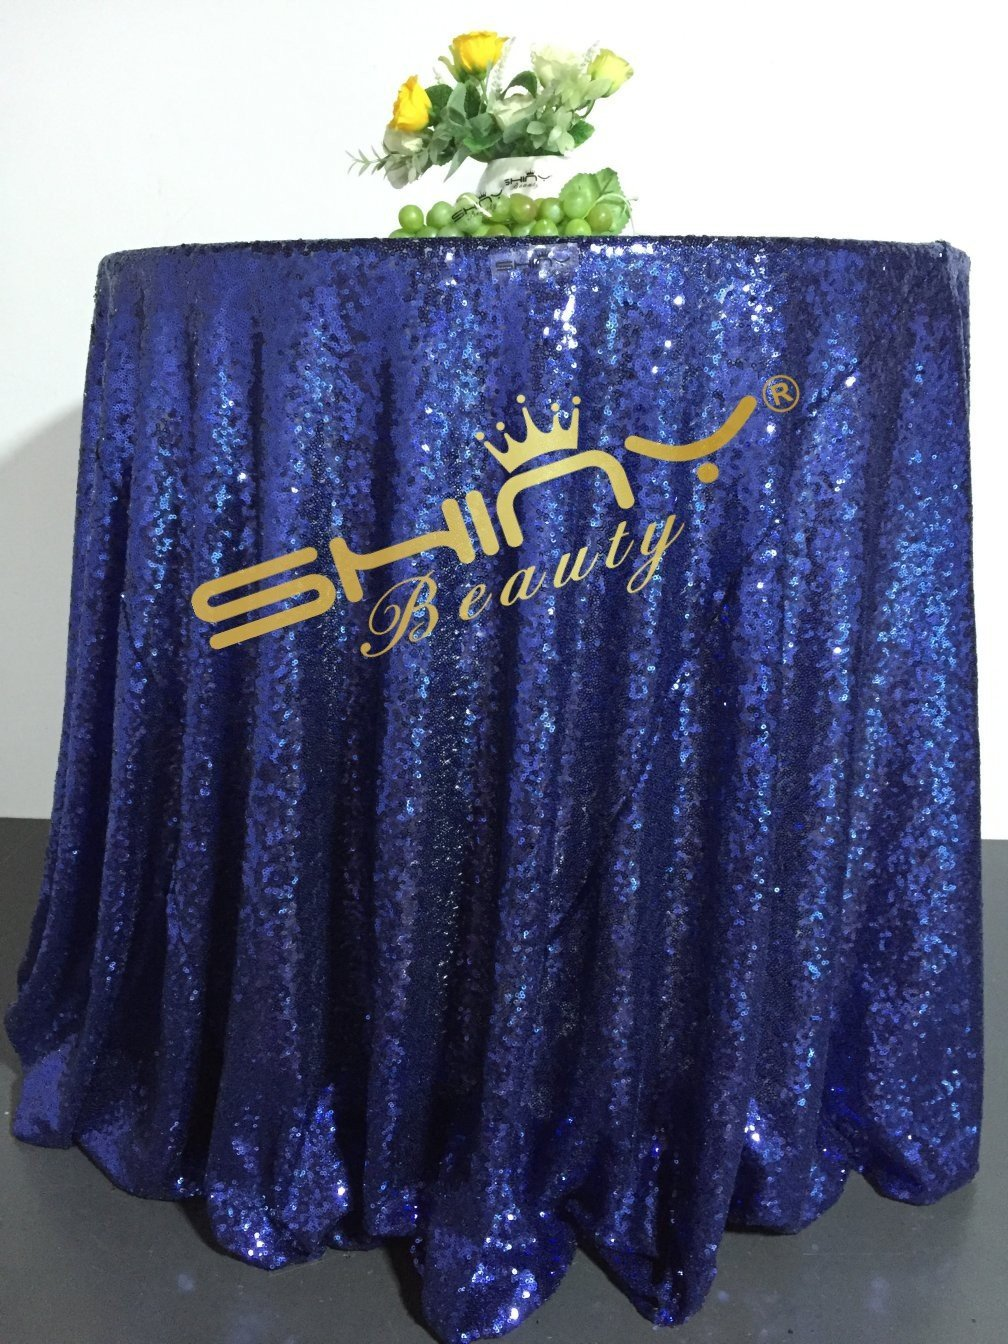 ShinyBeauty Glitter Navy 90Inch Round Sequin Tablecloth, Sequin Table Cloth, Sequin Table Overlay,Sequin Table Cover, Sequin Table Linen for Wedding Party Event